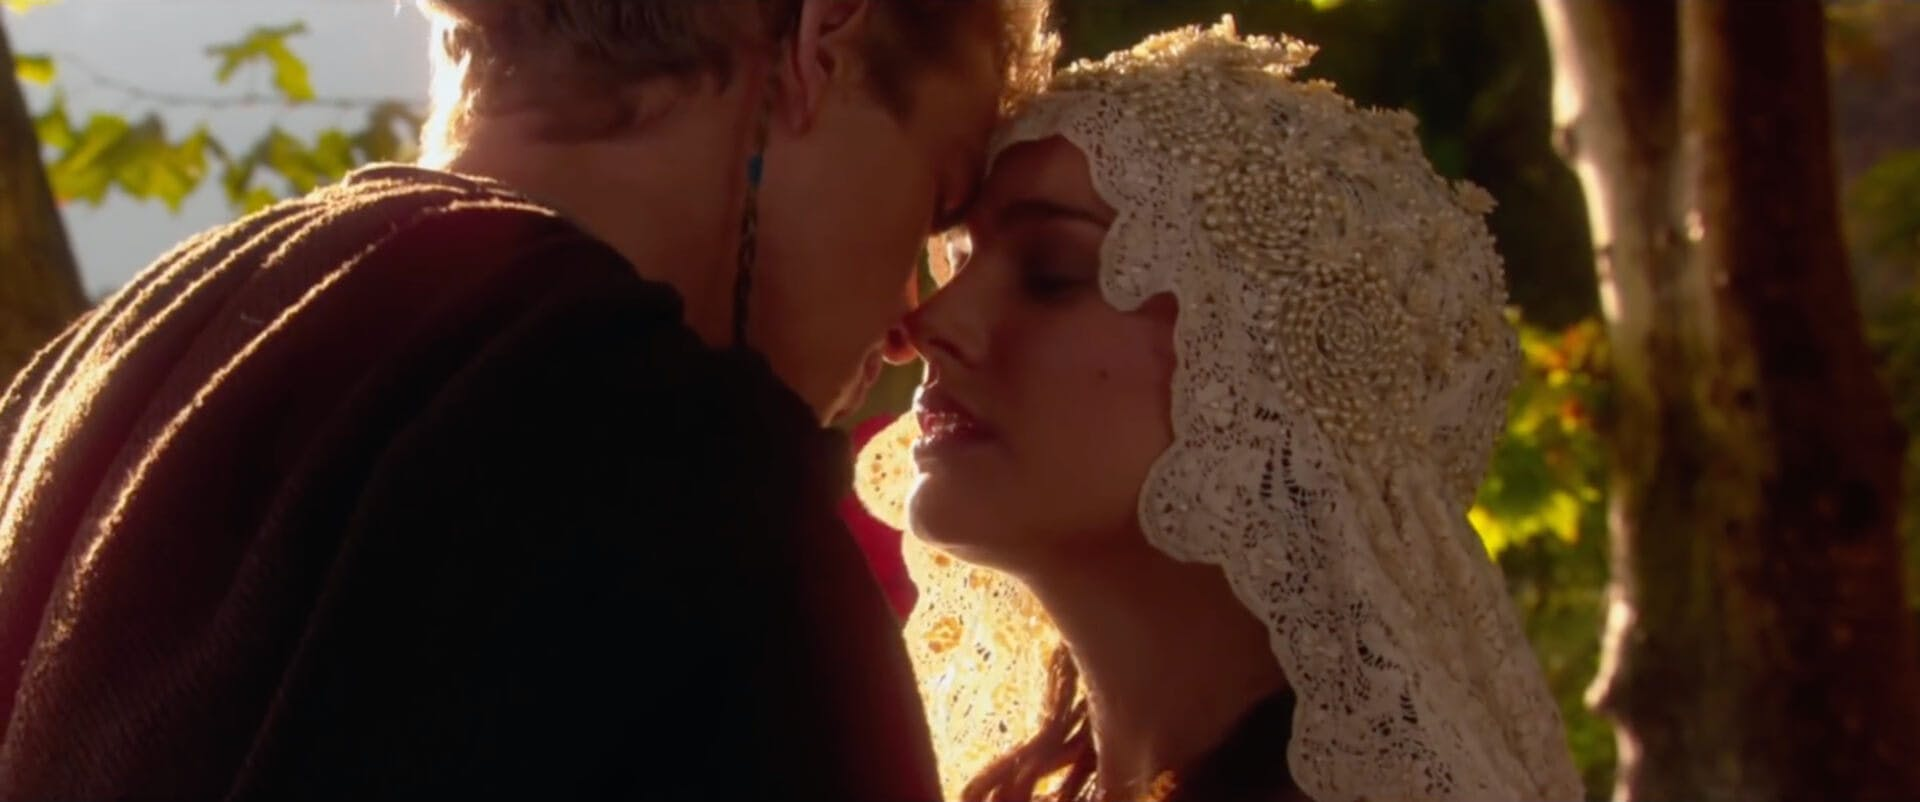 Attack of the Clones - Anakin and Padme star wars movies